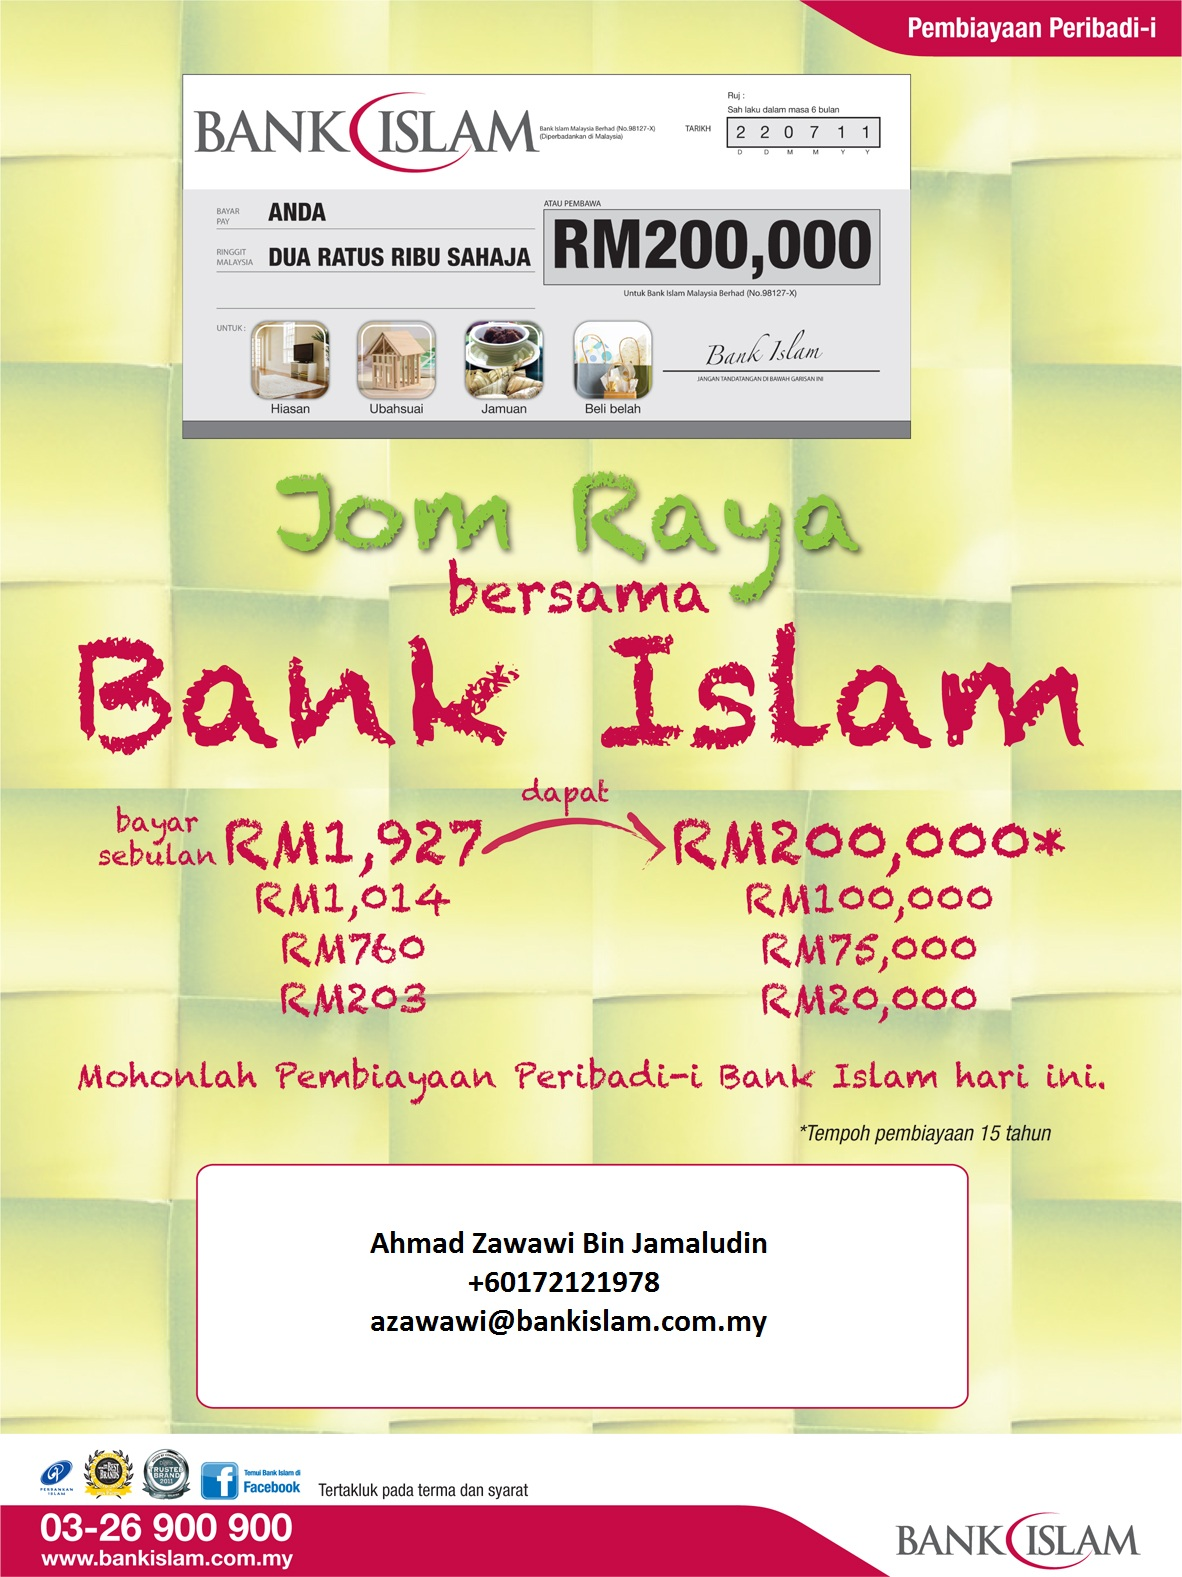 My Social Network: Personal Financing-i @ Bank Islam for Panel + Private Company